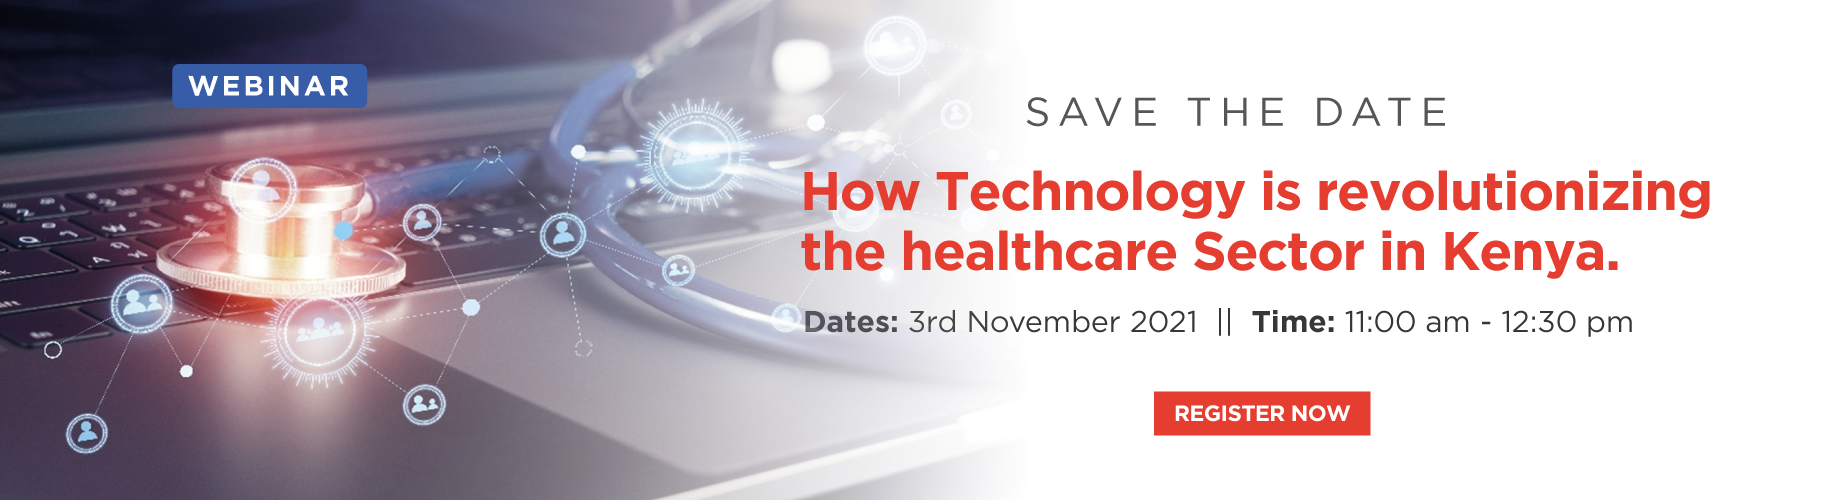 Weinar-How-Technology-is-revolutionizing-the-healthcare-Sector-in-Kenya